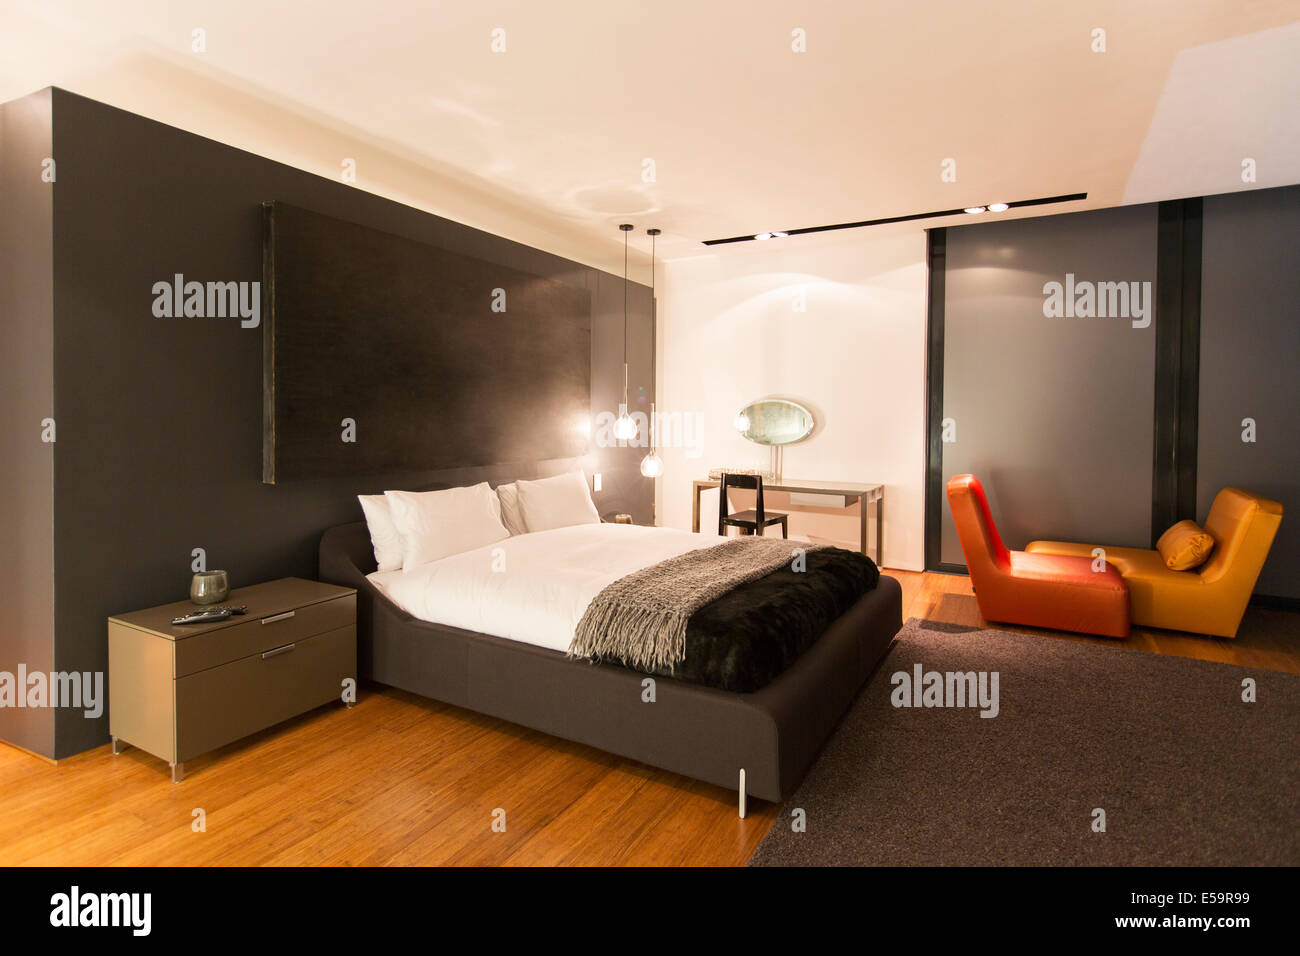 Rug and painting in modern bedroom Stock Photo: 72130613 - Alamy